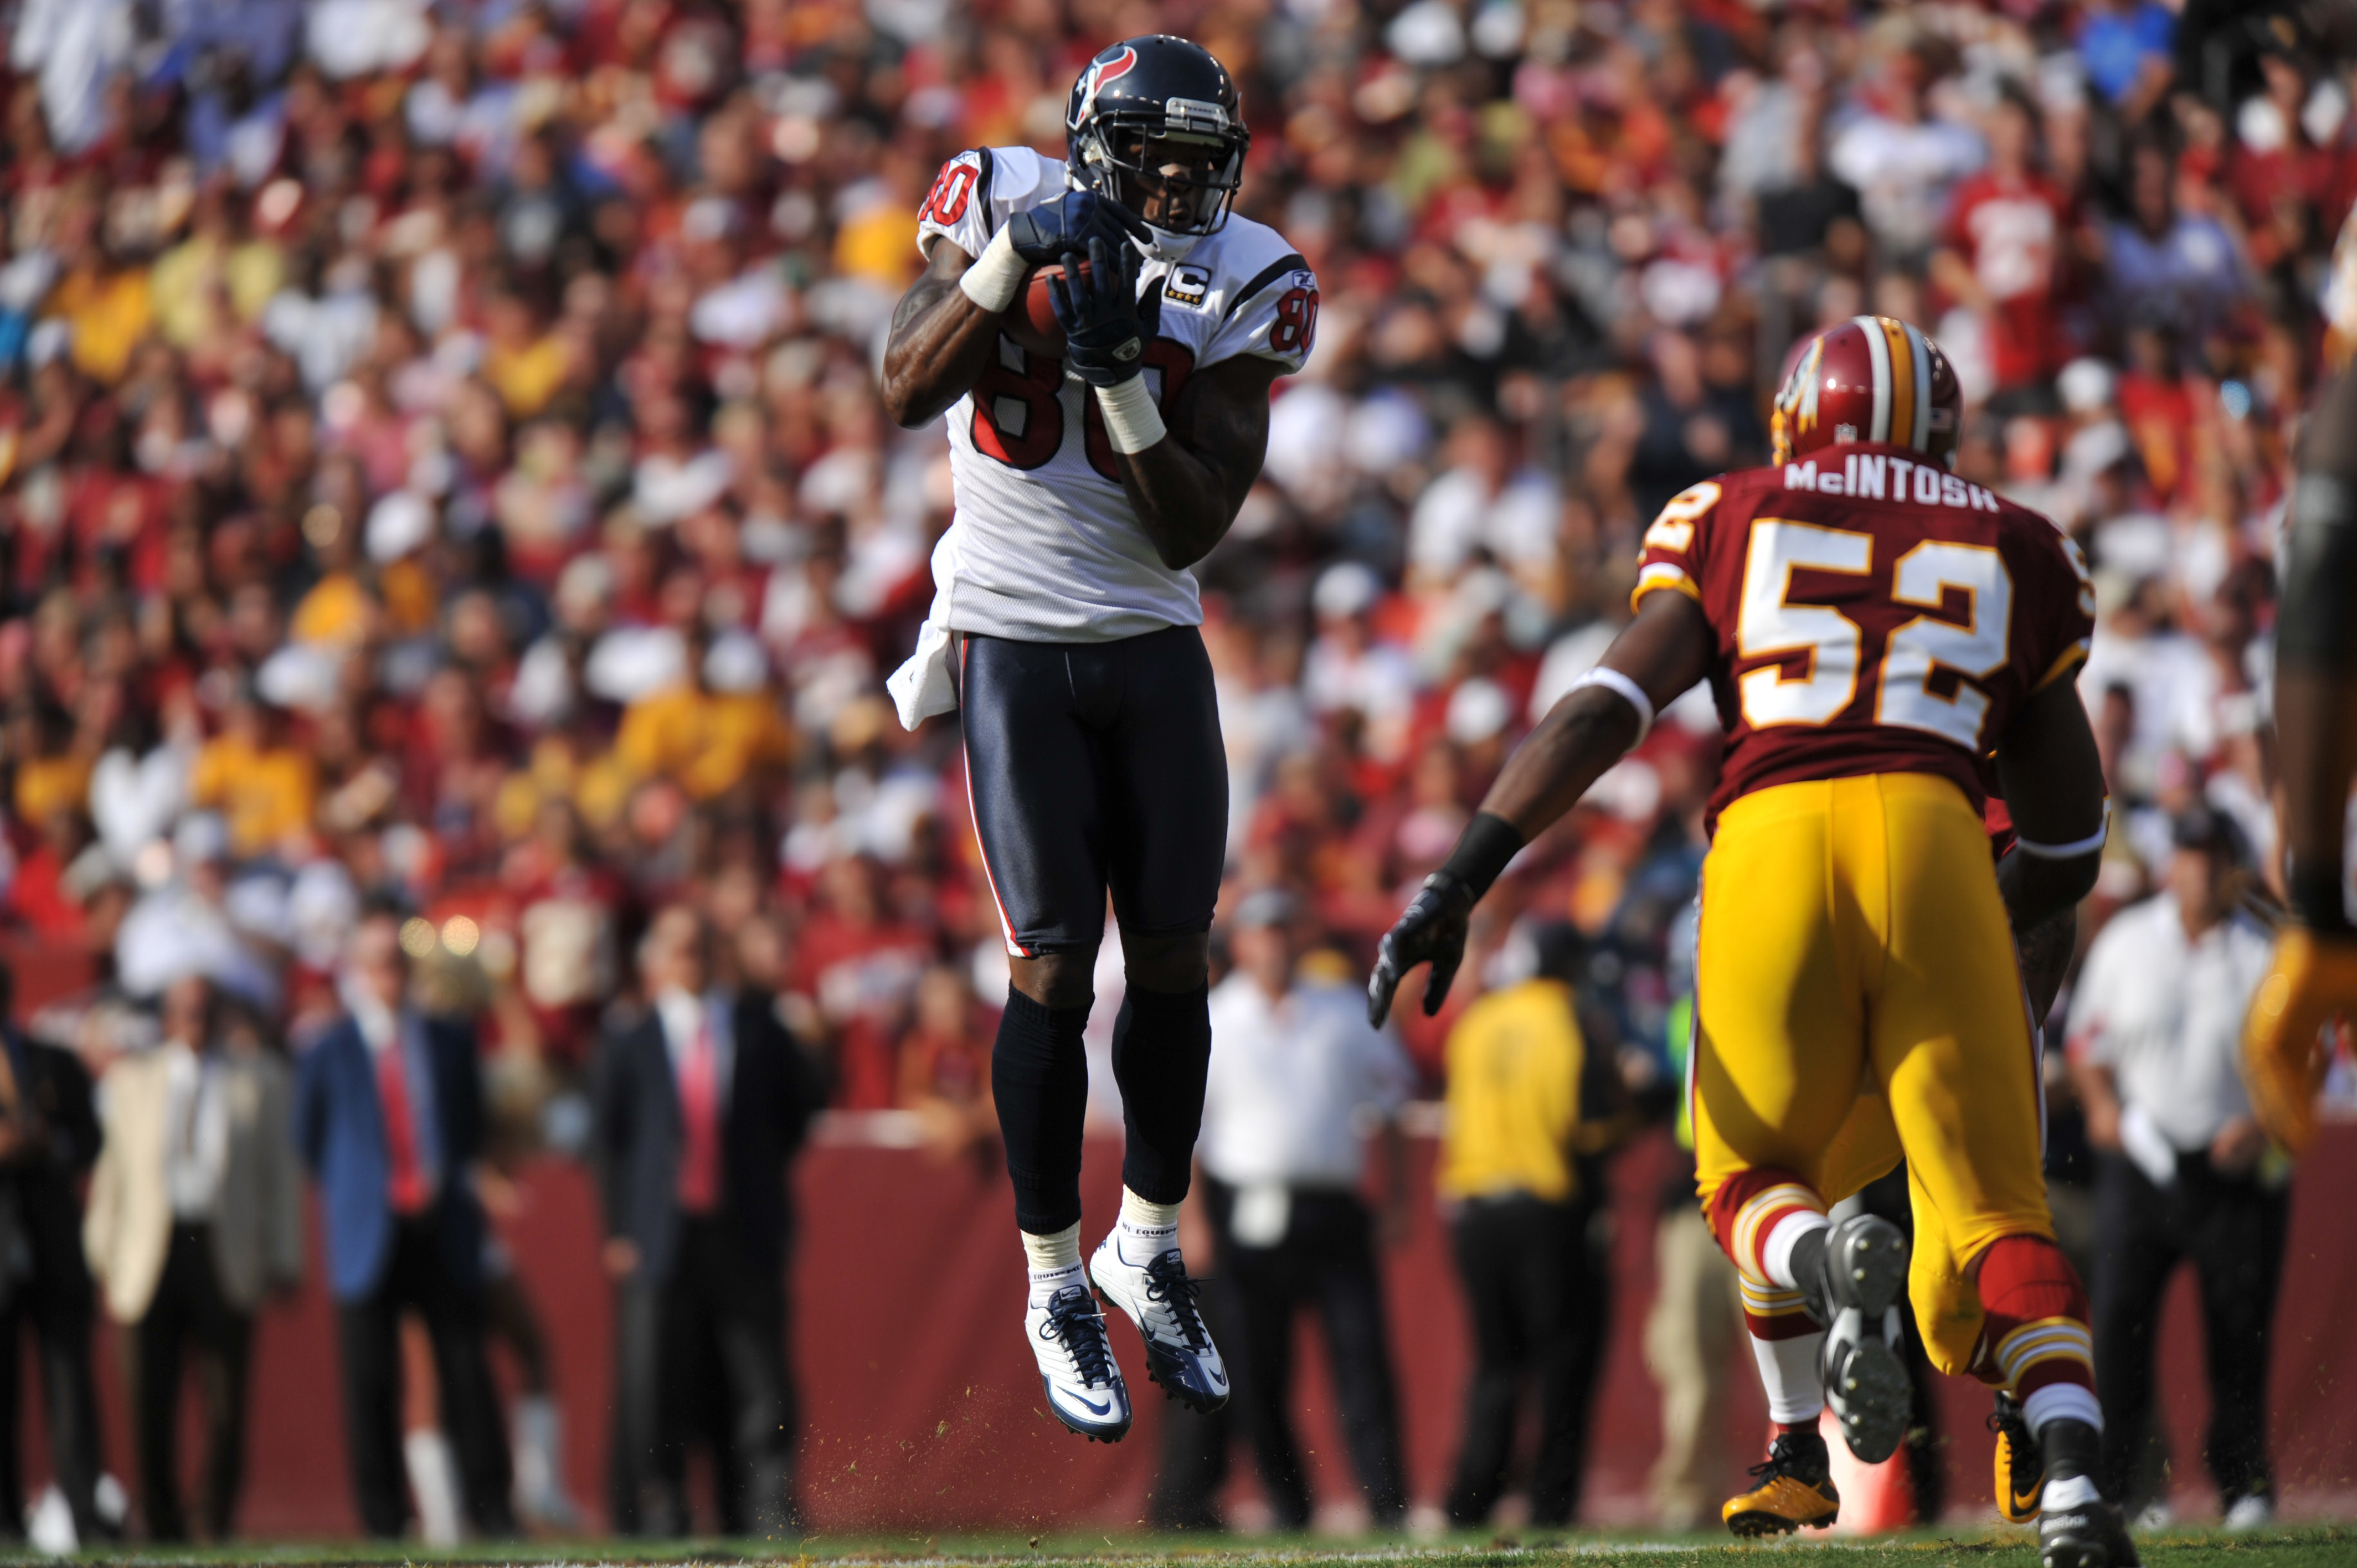 LANDOVER, MD - SEPTEMBER 19:  Andre Johnson #80 of the Houston Texans makes a catch against the Washington Redskins at FedExField on September 19, 2010 in Landover, Maryland. The Redskins lead Texans 20-7 at the half. (Photo by Larry French/Getty Images)